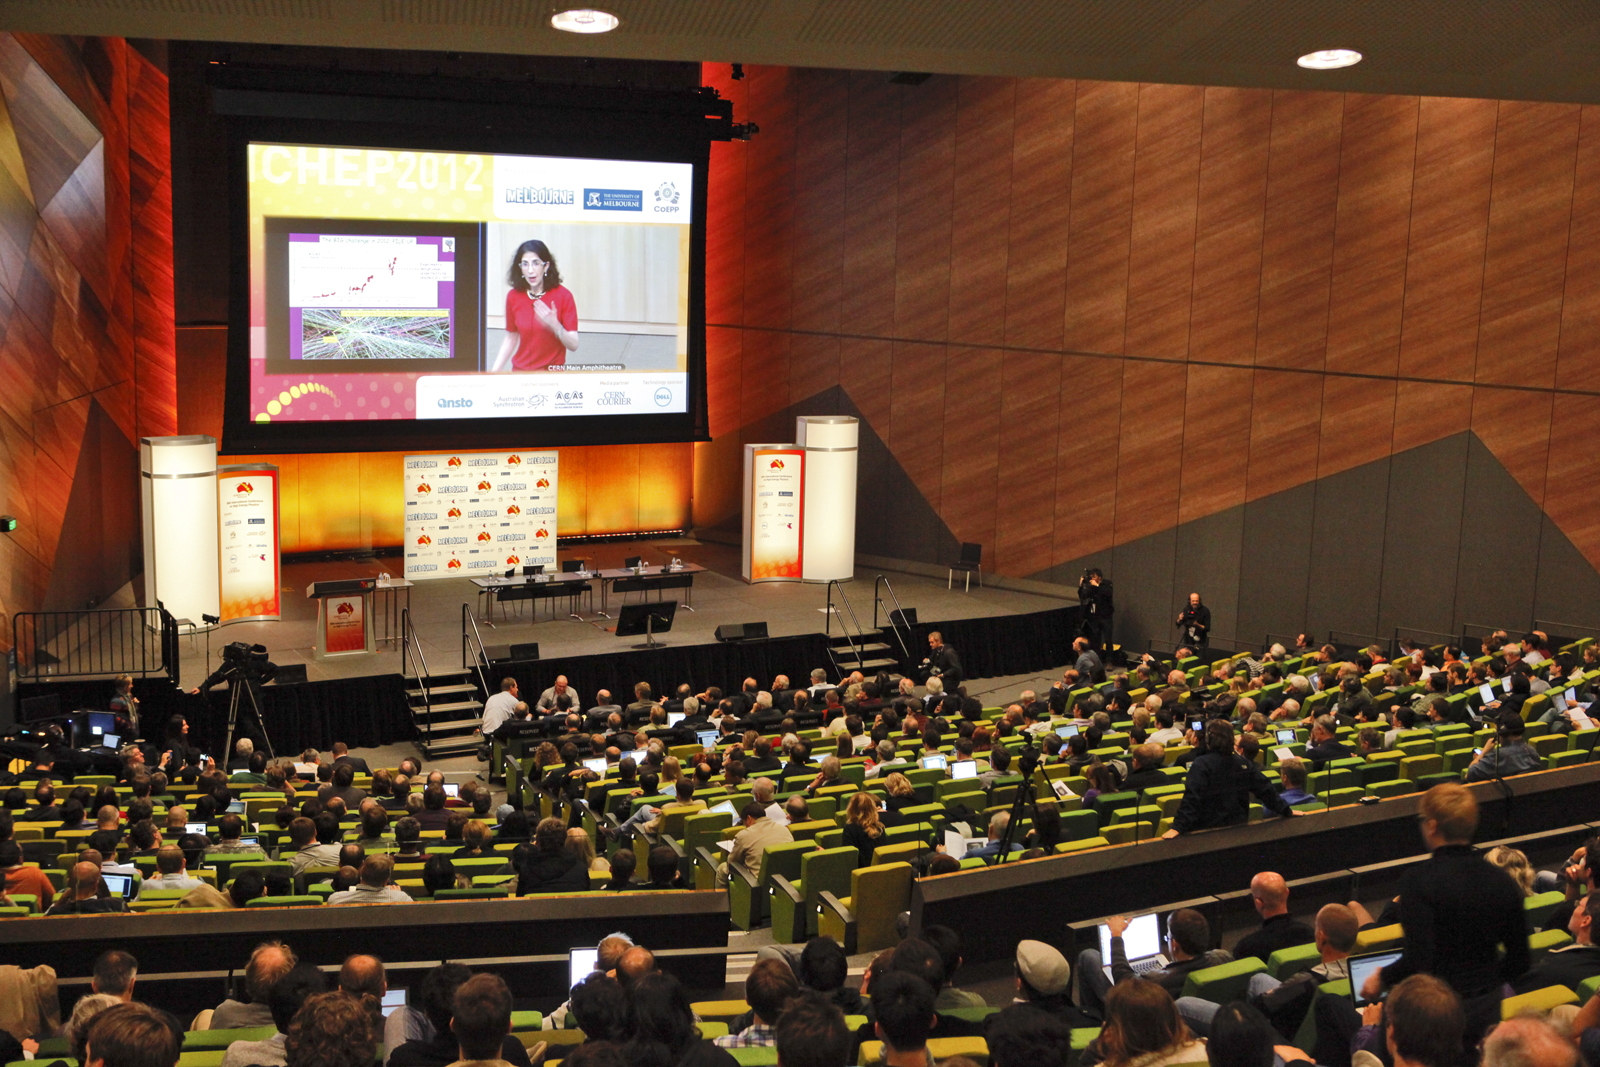 Crowds watch the historic seminar from Melbourne, Australia (CERN)